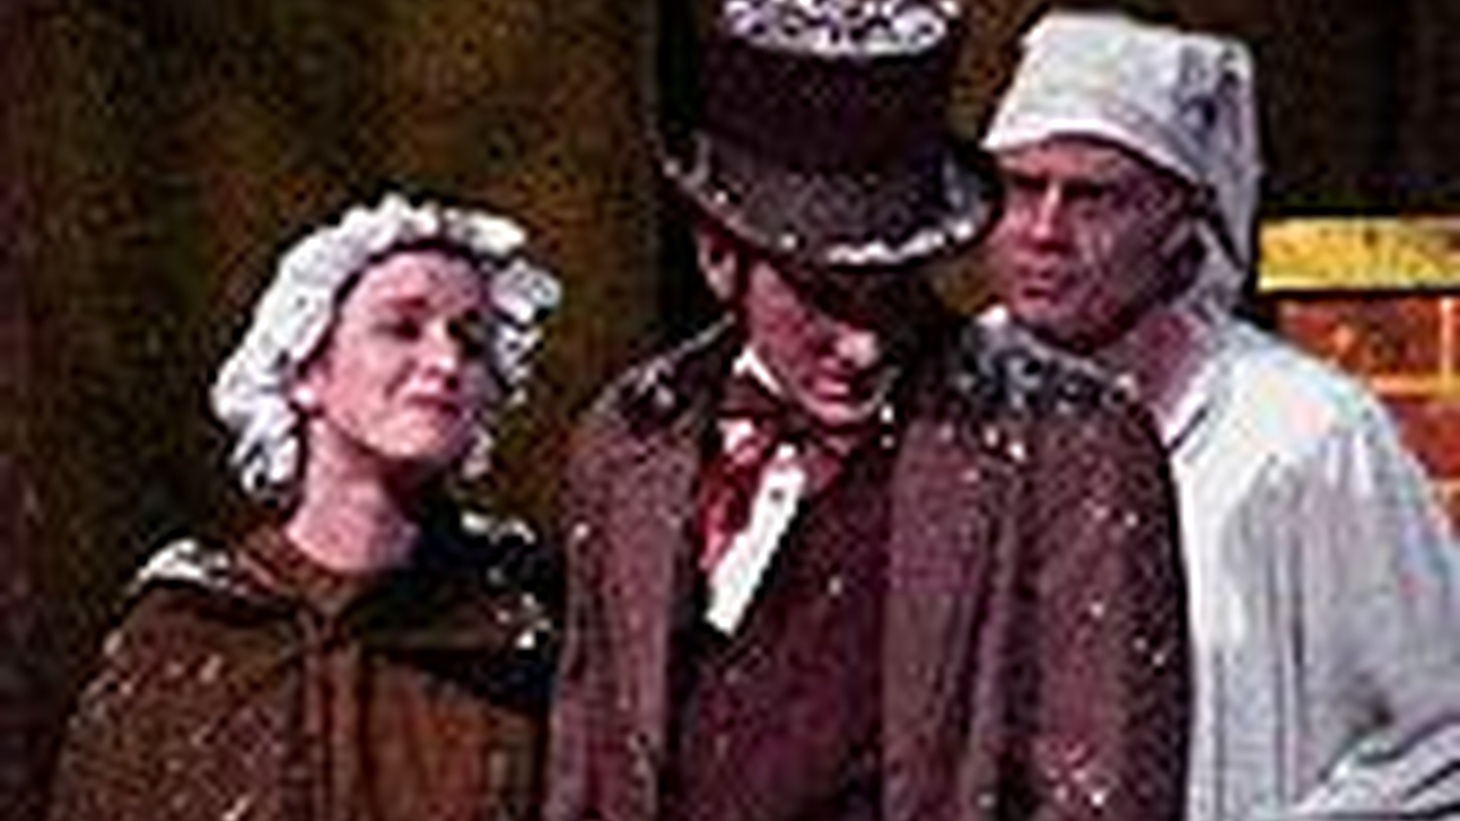 Featuring the great American actor, John Barrymore as Scrooge. (1-2pm)